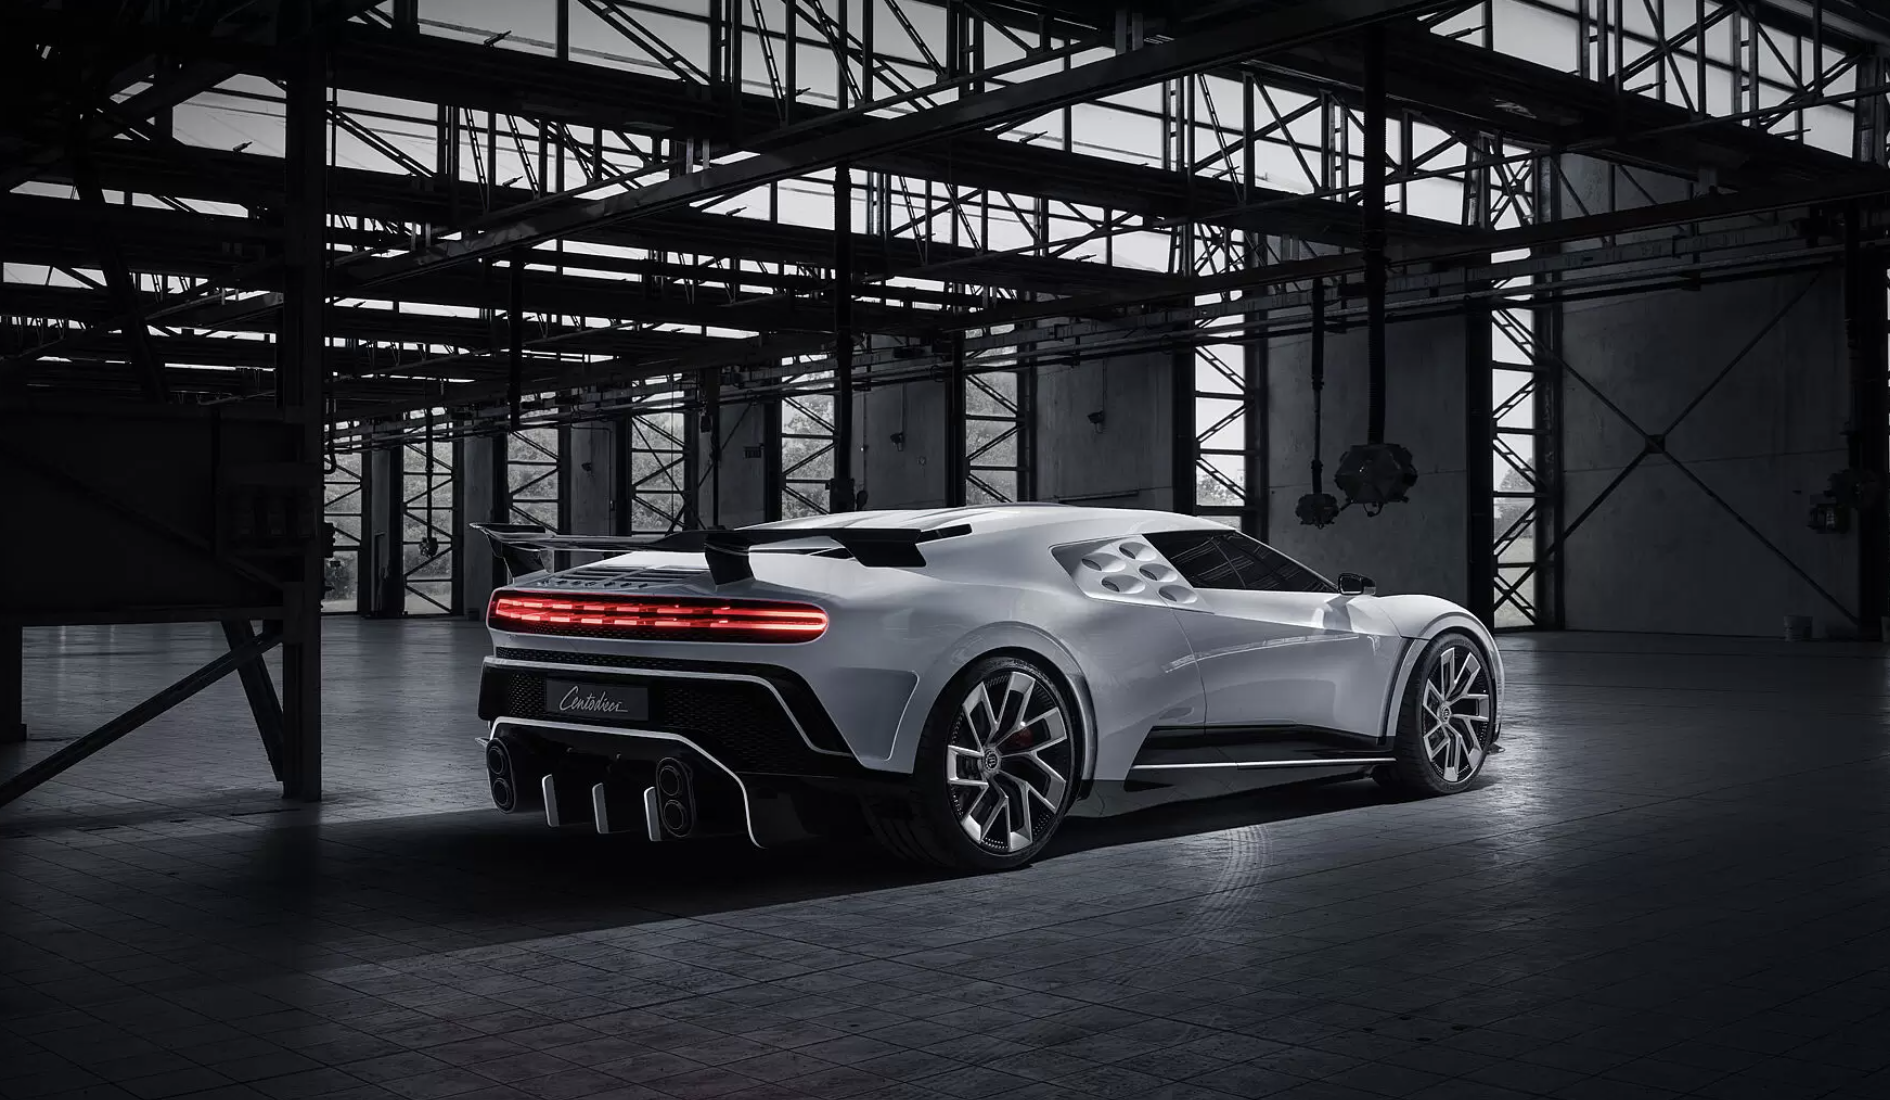 Bugatti Has Just Unveiled Its Ultra-Exclusive US$9.6M Centodieci Hypercar Prototype